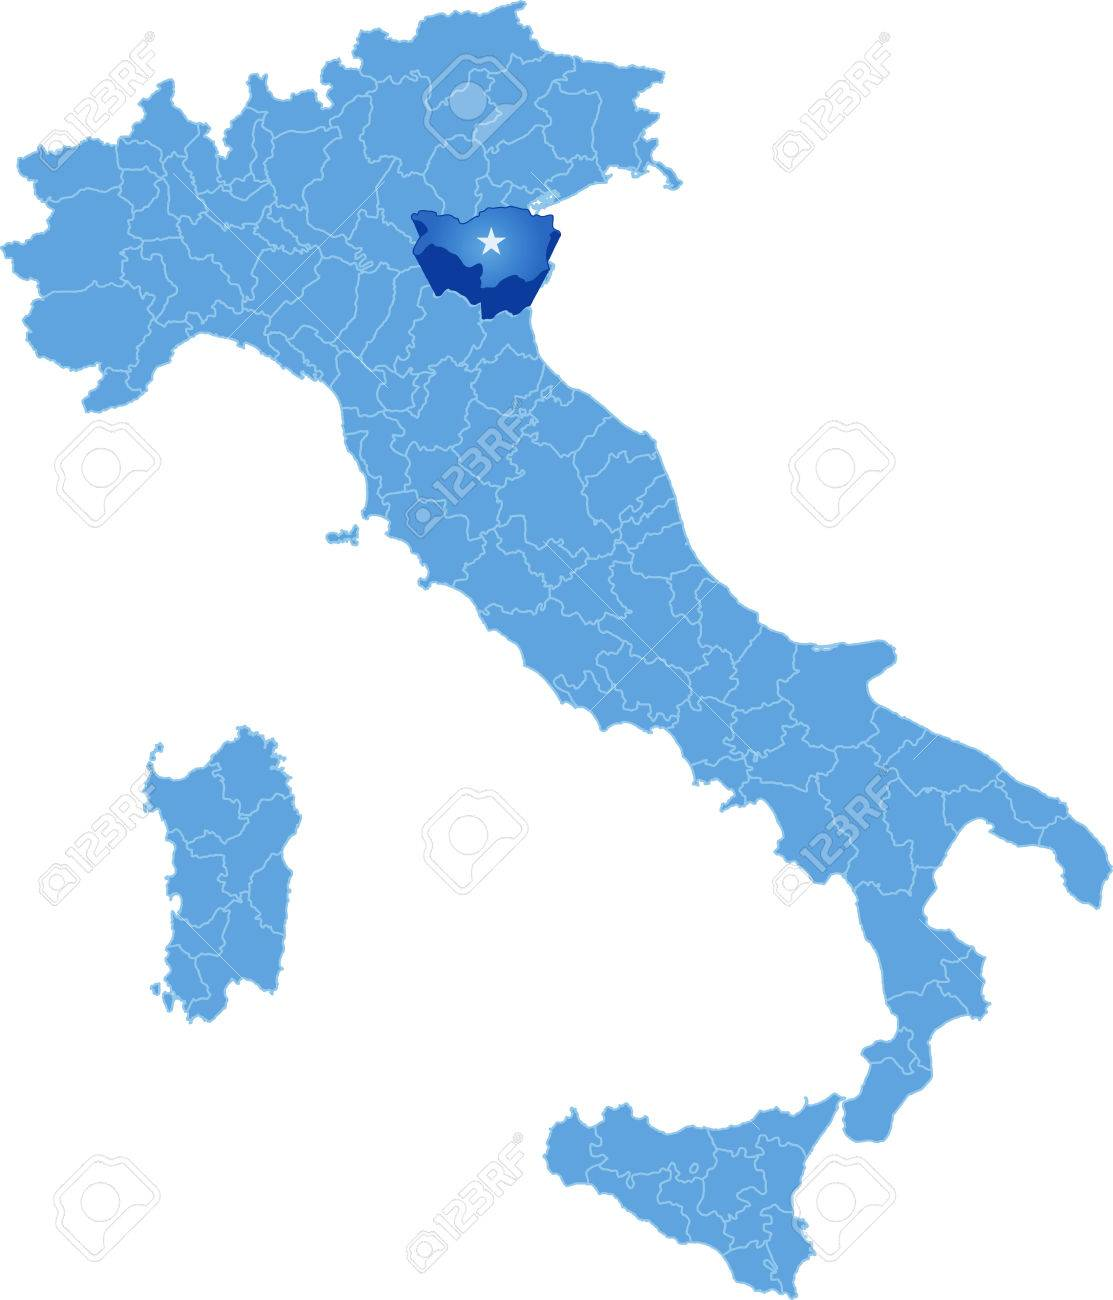 Map Of Italy Where Ferrara Province Is Pulled Out Isolated On